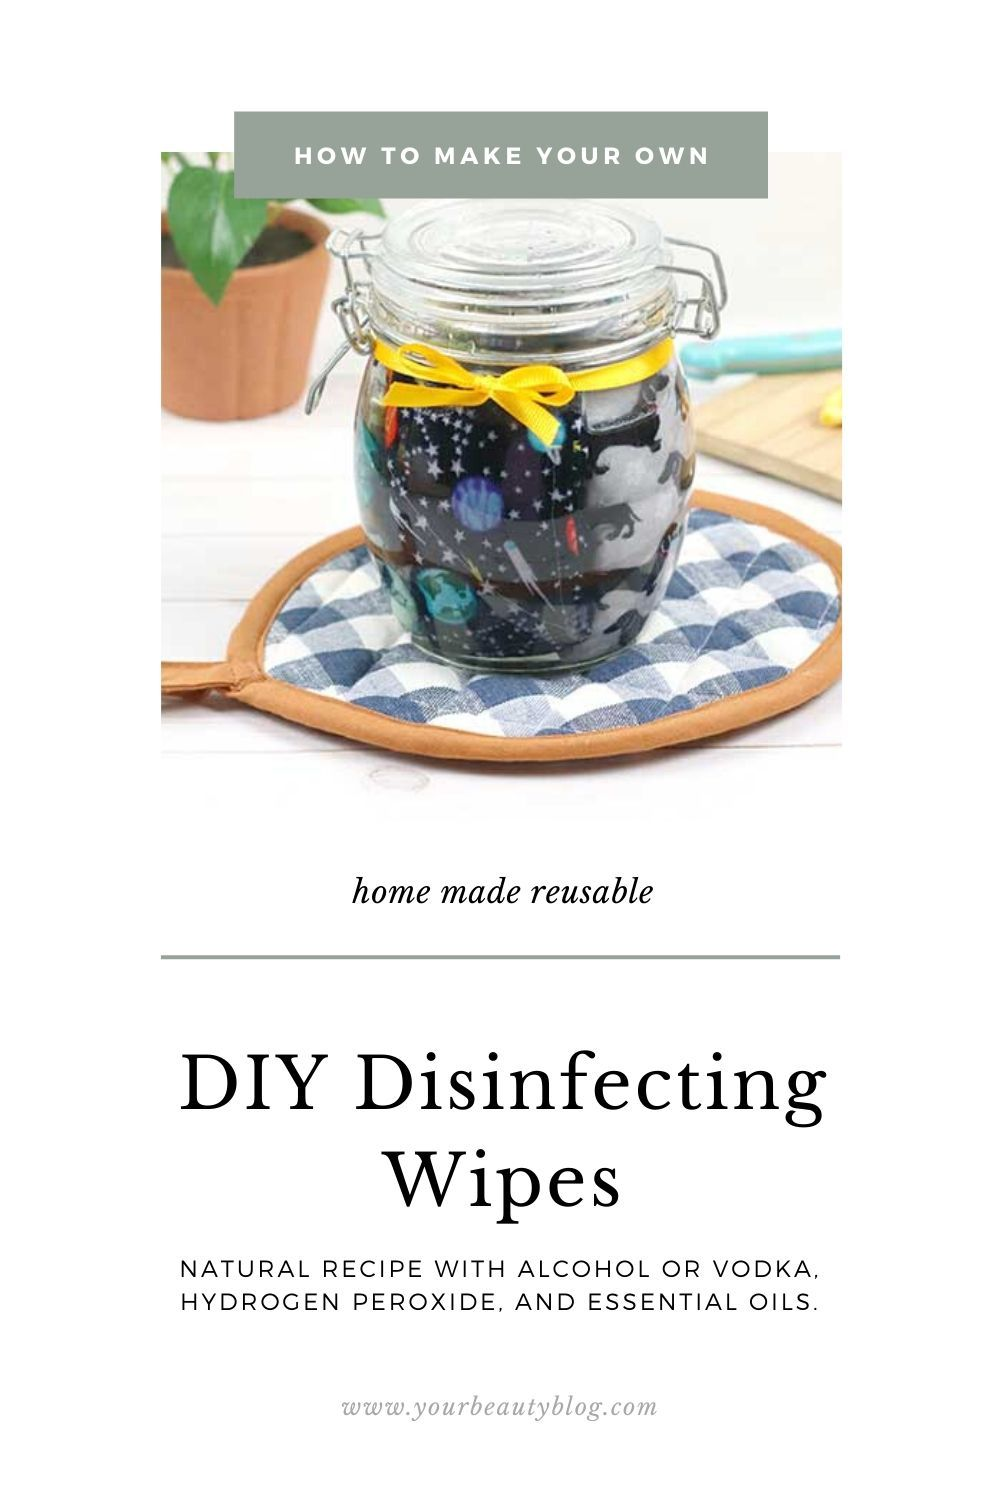 DIY Disinfecting Wipes With 70 Alcohol and Hydrogen